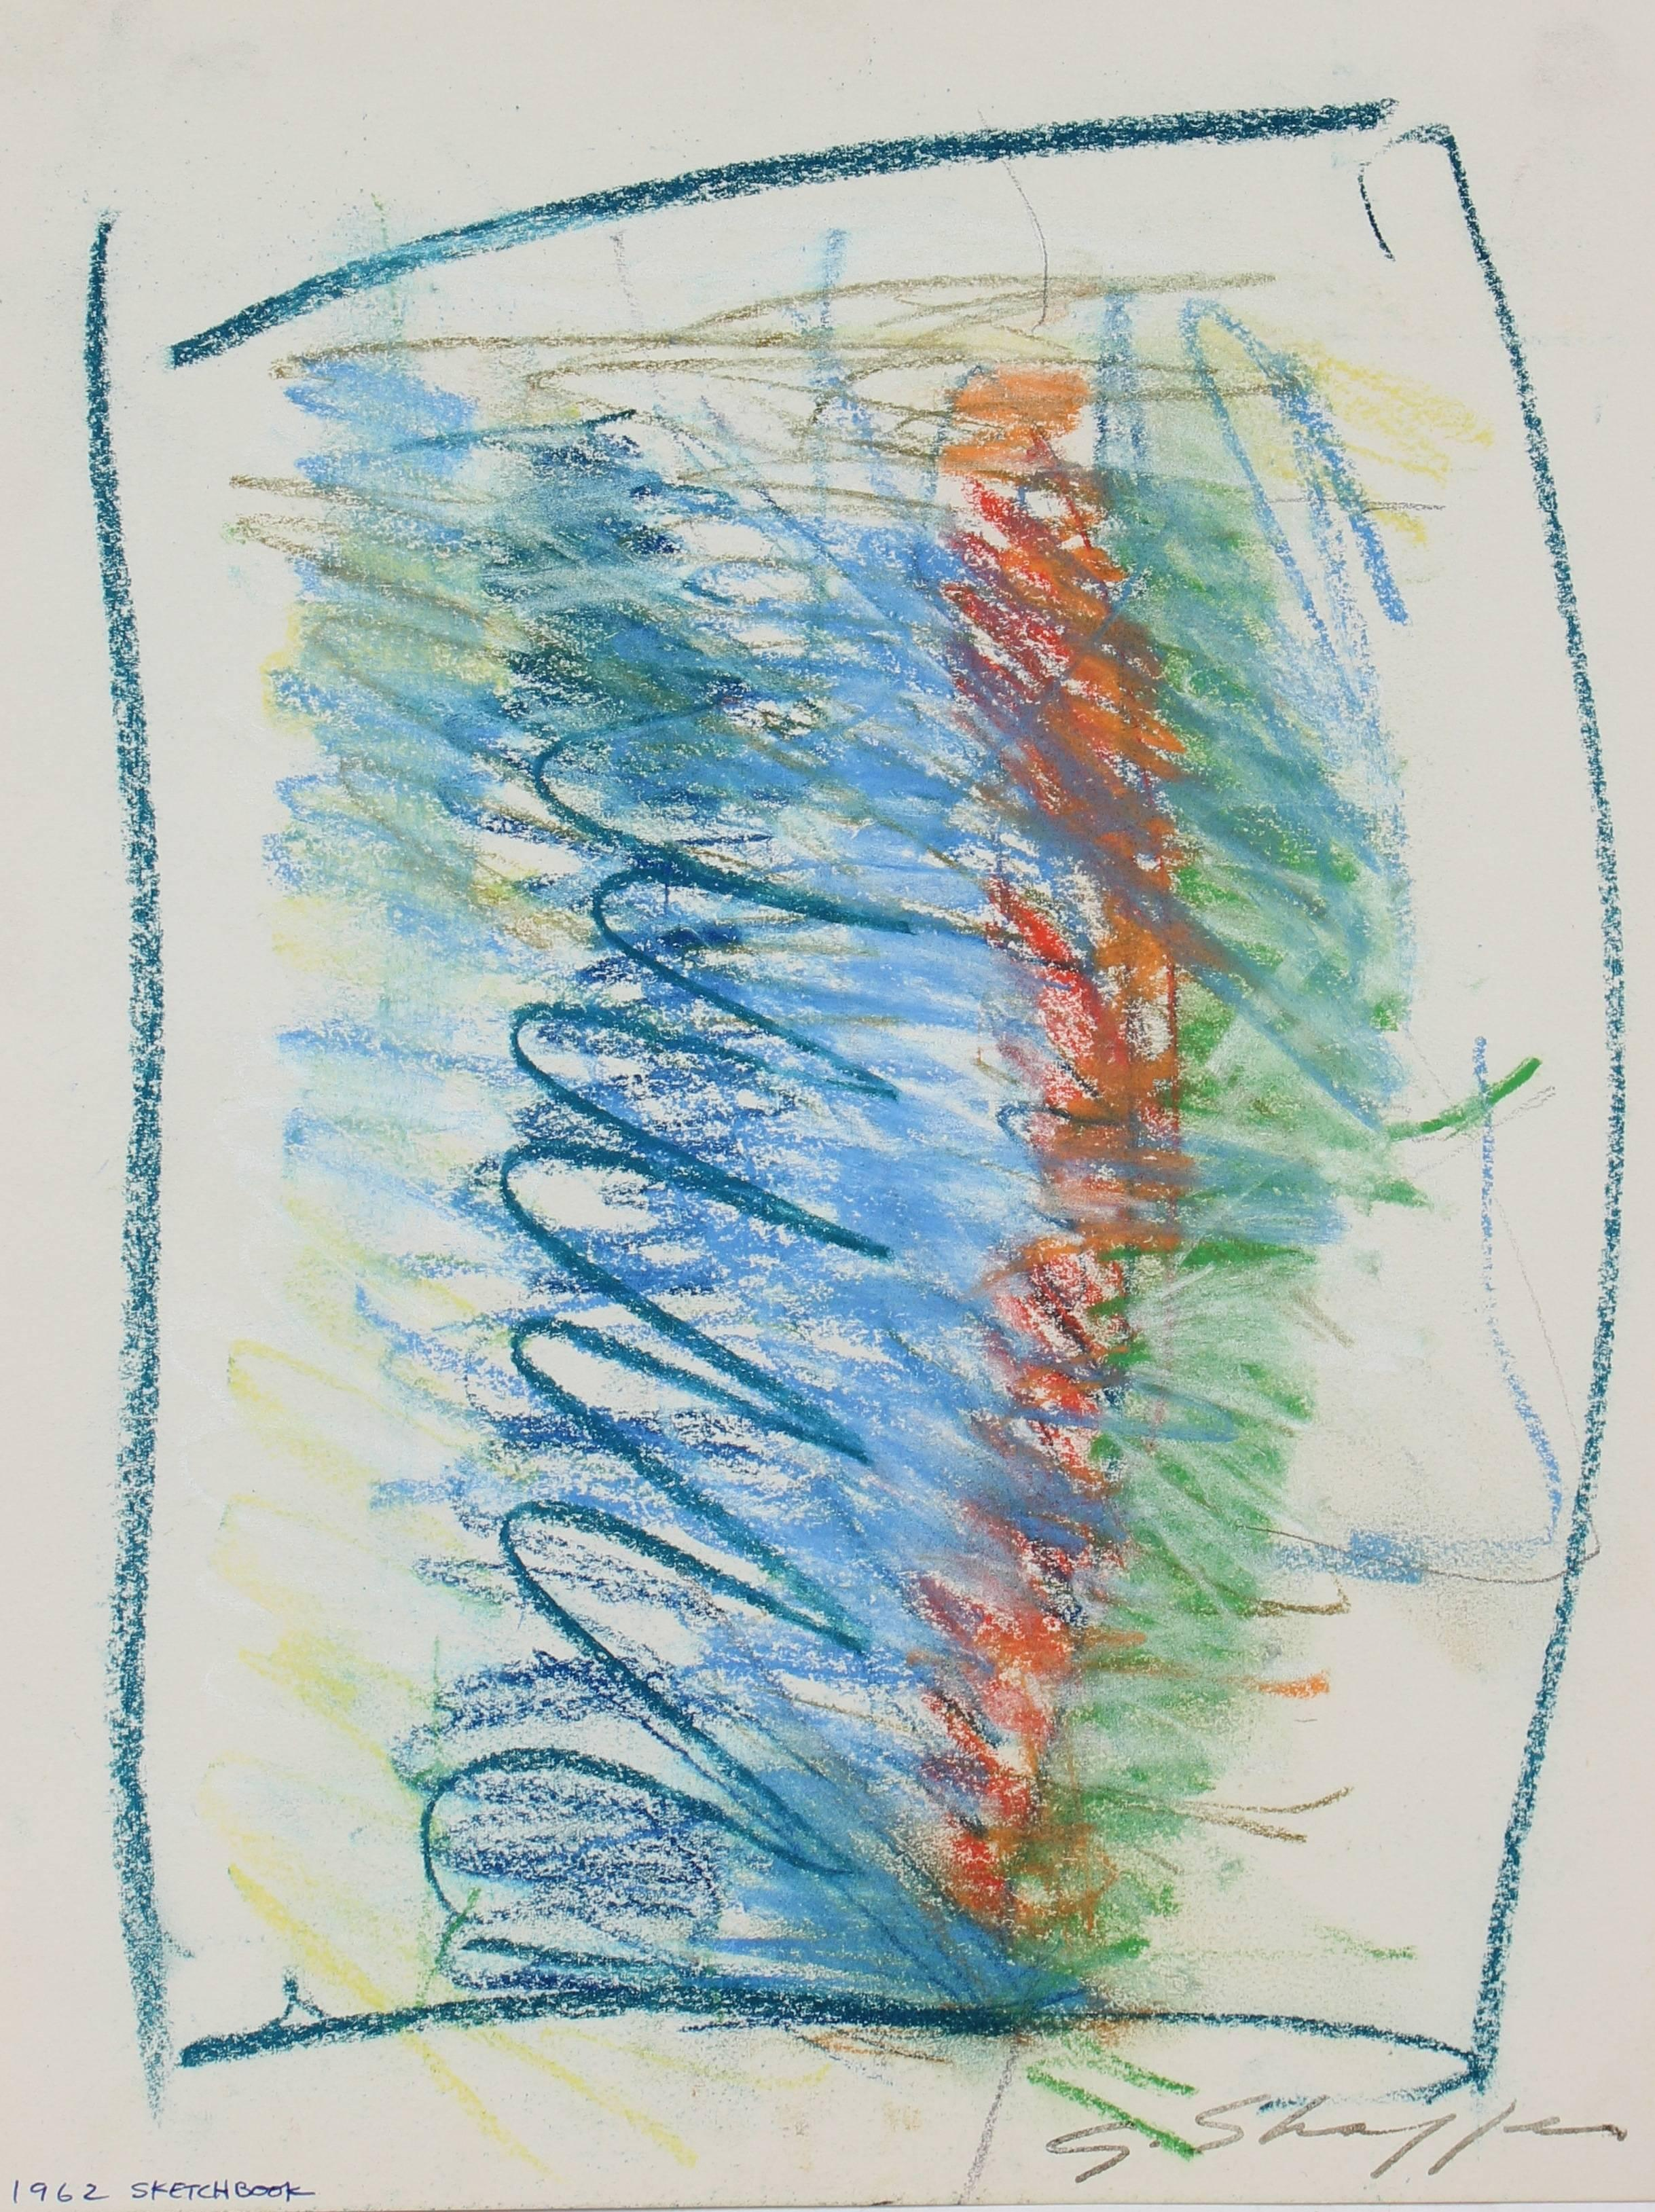 Abstract Expressionist Colorful Drawing in Pastel with Blue Green Orange, 1962